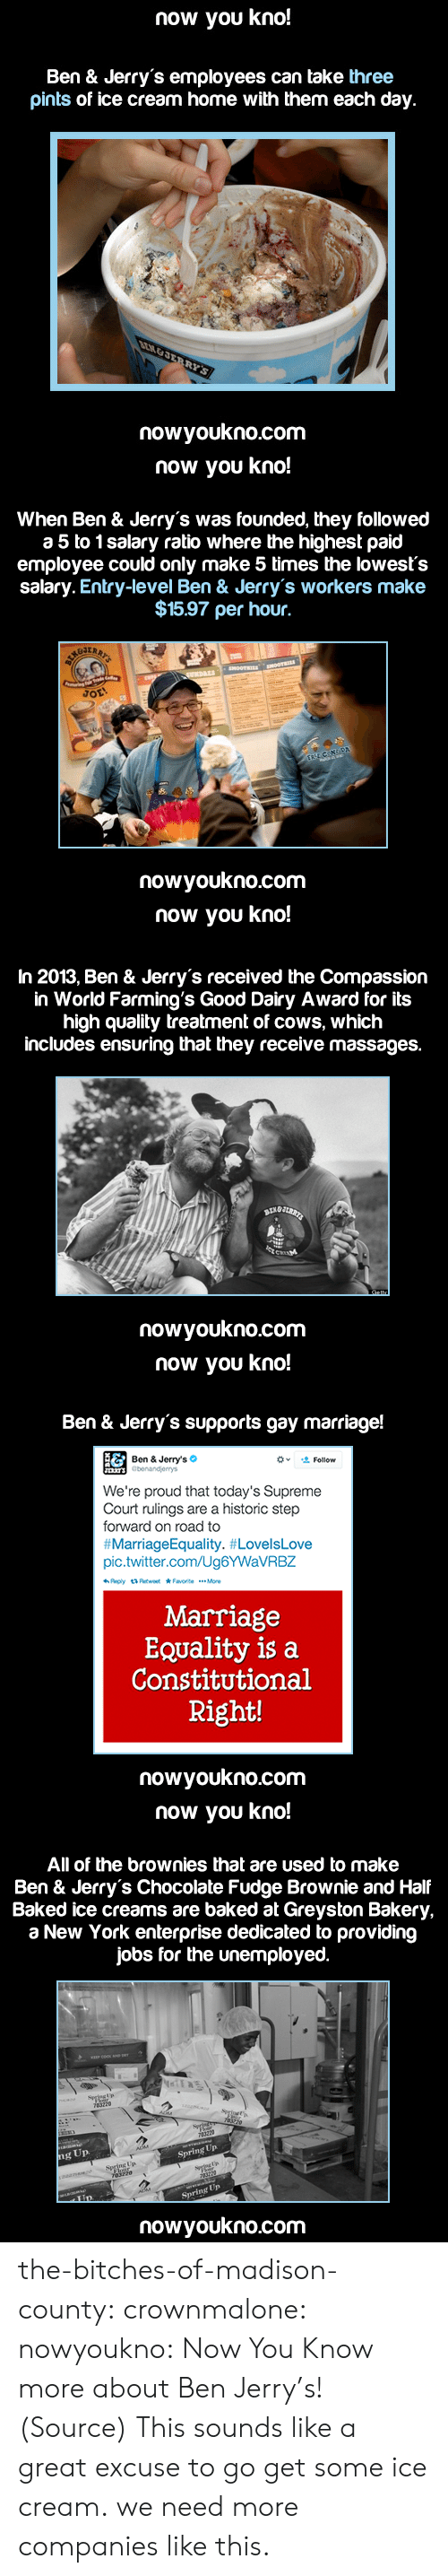 marriage equality: now you kno!  Ben & Jerry's employees can take three  pints of ice cream home with them each day.  nowyoukno.com   now you kno!  When Ben & Jerry's was founded, they followed  a 5 to 1 salary ratio where the highest paid  employee could only make 5 times the lowests  salary. Entry-level Ben & Jerry's workers make  $15.97 per hour.  JER  nowyoukno.com   now you kno!  In 2013, Ben & Jerry's received the Compassion  in World Farming's Good Dairy Award for its  high quality treatment of cows, which  includes ensuring that they receive massages.  nowyoukno.com   now you kno!  Ben & Jerry's supports gay marriage!  Ben & Jerry's  Gbenanderys  '오 Follow  We're proud that today's Supreme  Court rulings are a historic step  forward on road to  #MarriageEquality. #LovelsLove  pic.twitter.com/Ug6YWaVRBZ  Marriage  EQuality is a  Constitutional  Right!  nowyoukno.com   now you kno!  All of the brownies that are used to make  Ben & Jerry's Chocolate Fudge Brownie and Half  Baked ice creams are baked at Greyston Bakery,  a New York enterprise dedicated to providing  jobs for the unemployed.  ng Up  Spring Up  Spring Up  nowyoukno.com the-bitches-of-madison-county:  crownmalone:  nowyoukno:  Now You Know more about Ben  Jerry's! (Source)  This sounds like a great excuse to go get some ice cream.  we need more companies like this.